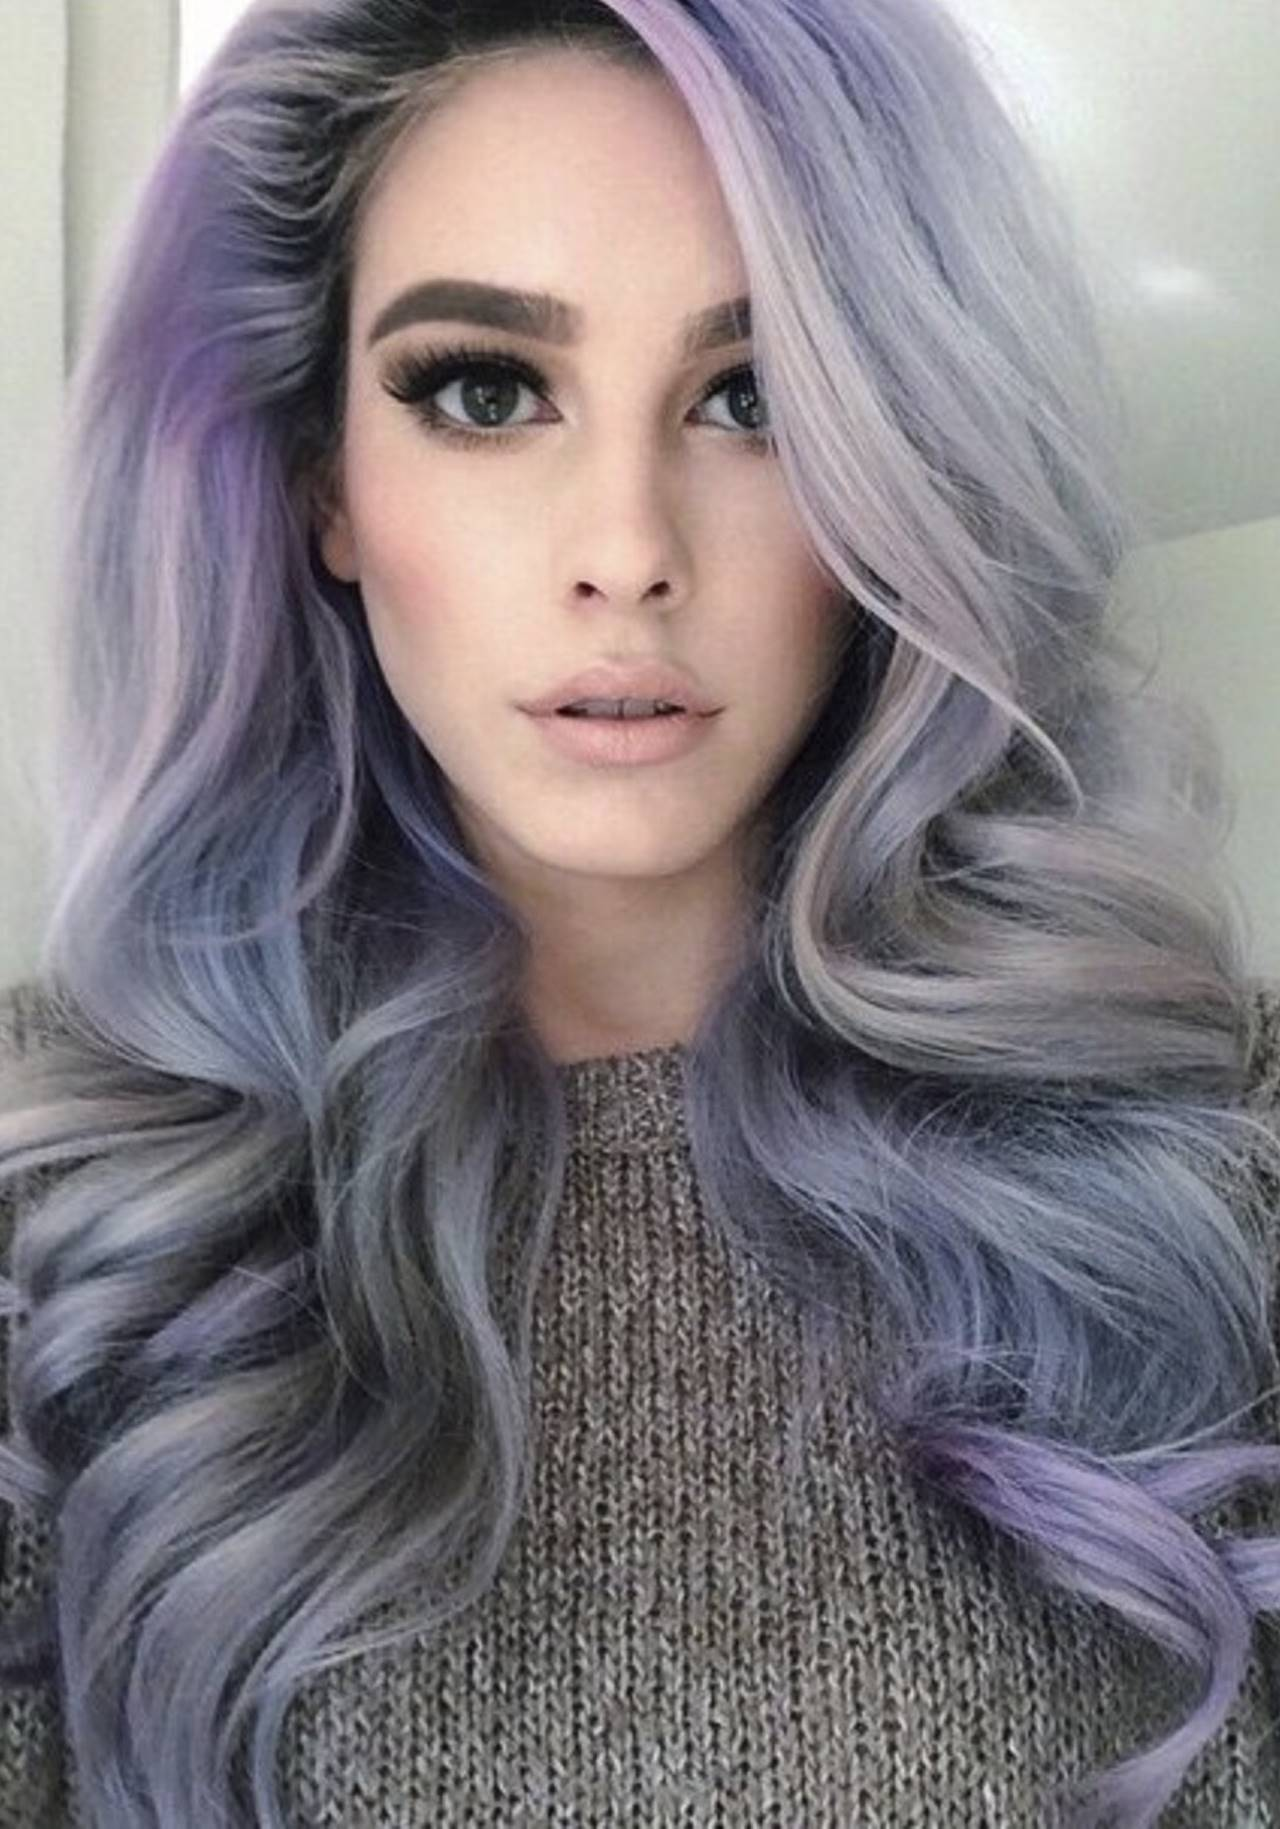 DUSTYPASTELHAIR4